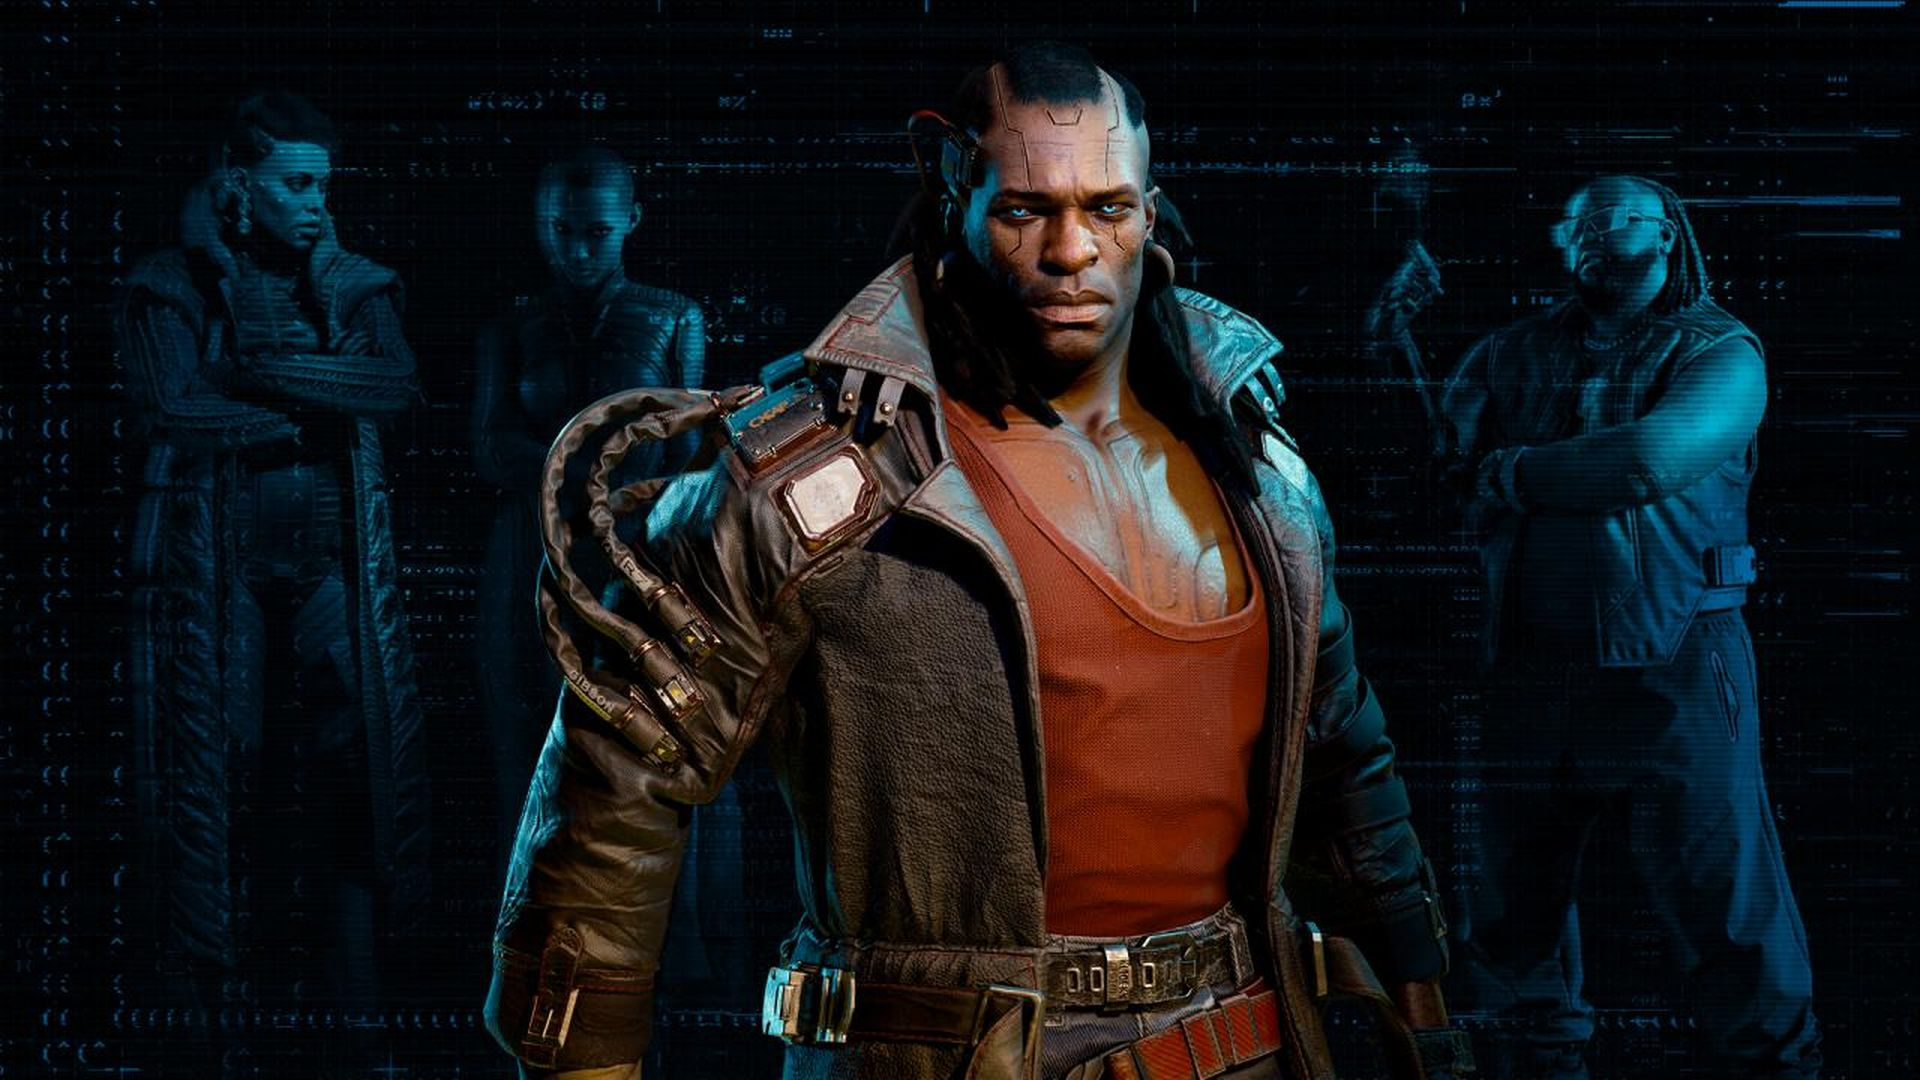 Update: CD Projekt Promises Cyberpunk 2077 Fans That Potential Bugs Should Not Impact Their Gaming Experience – New Patch Out